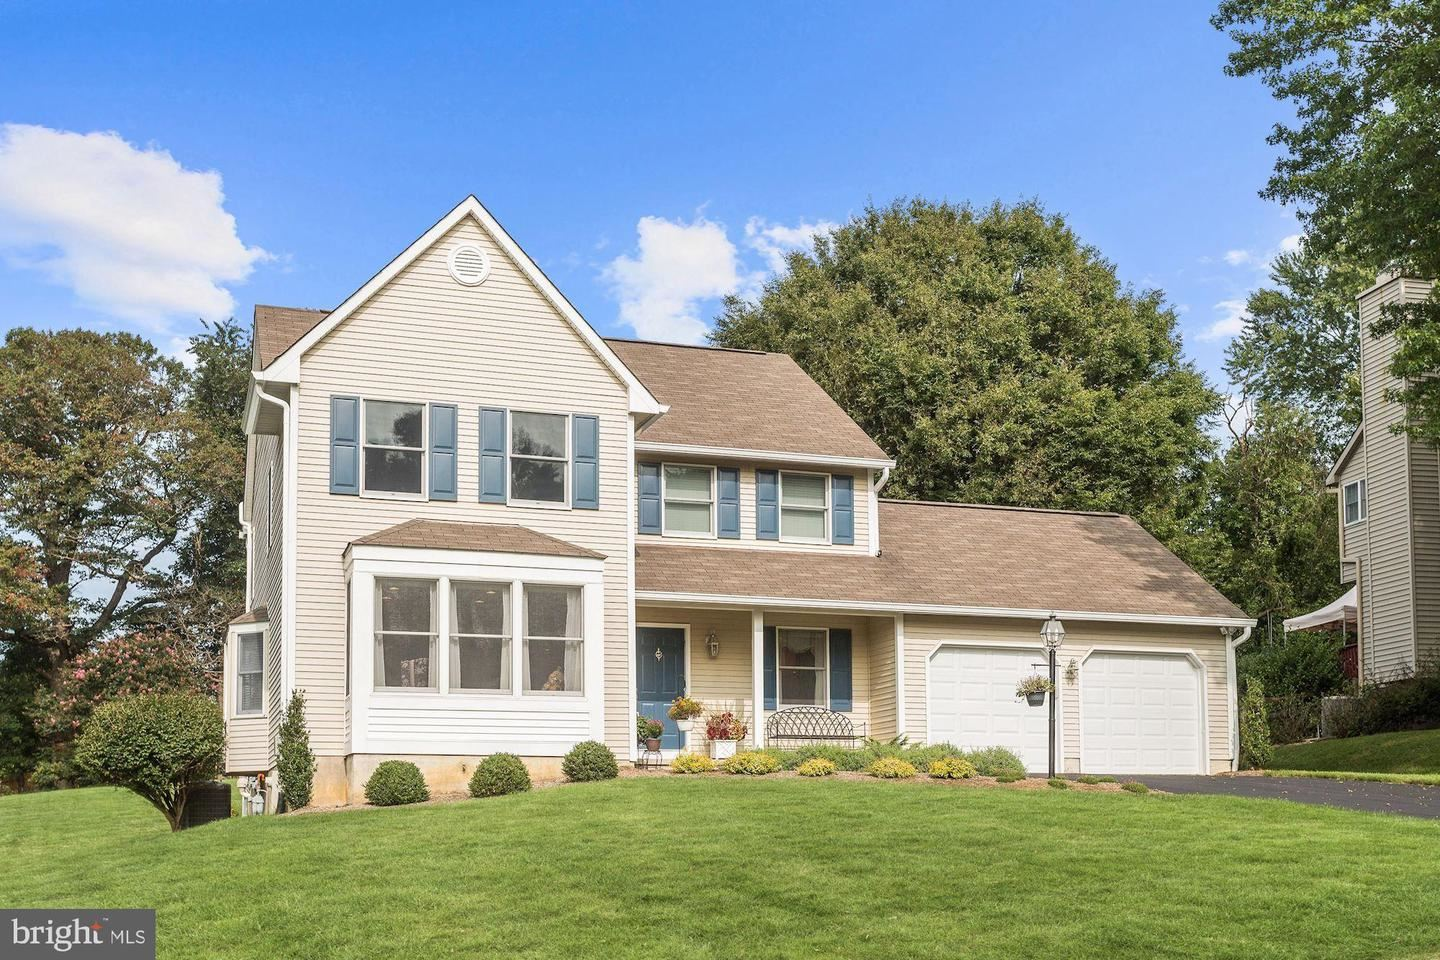 Photo of 9812 OLD WILLOW WAY, ELLICOTT CITY, MD 21042 (MLS # MDHW285360)